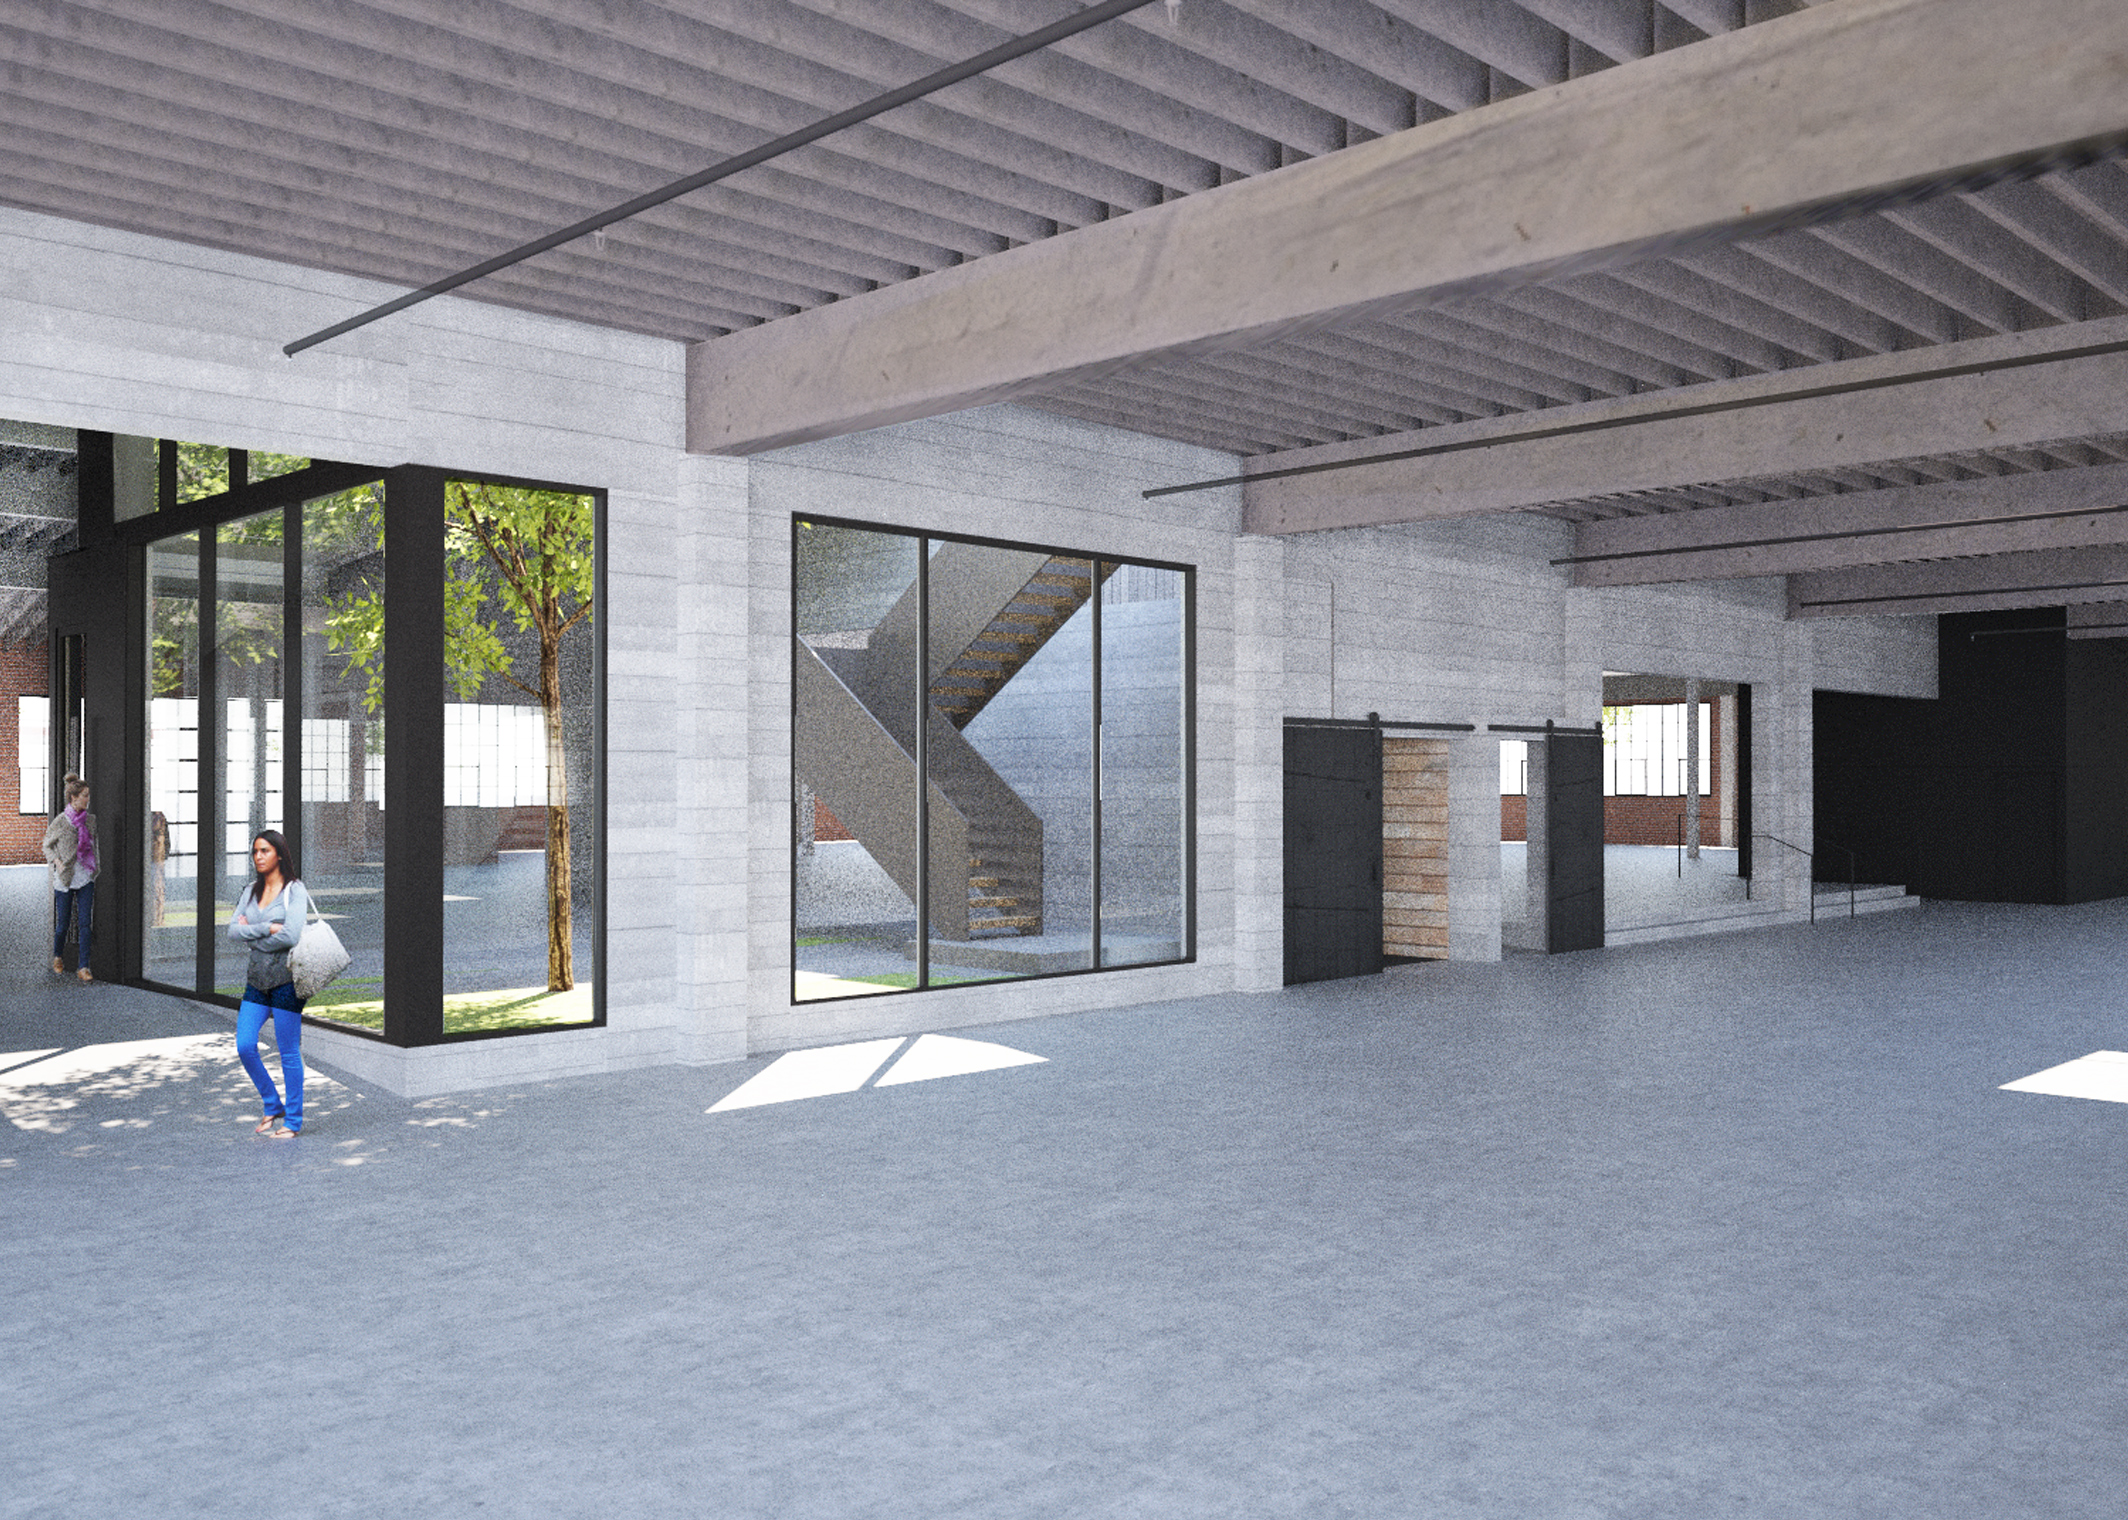 rendering, empty large space office interior